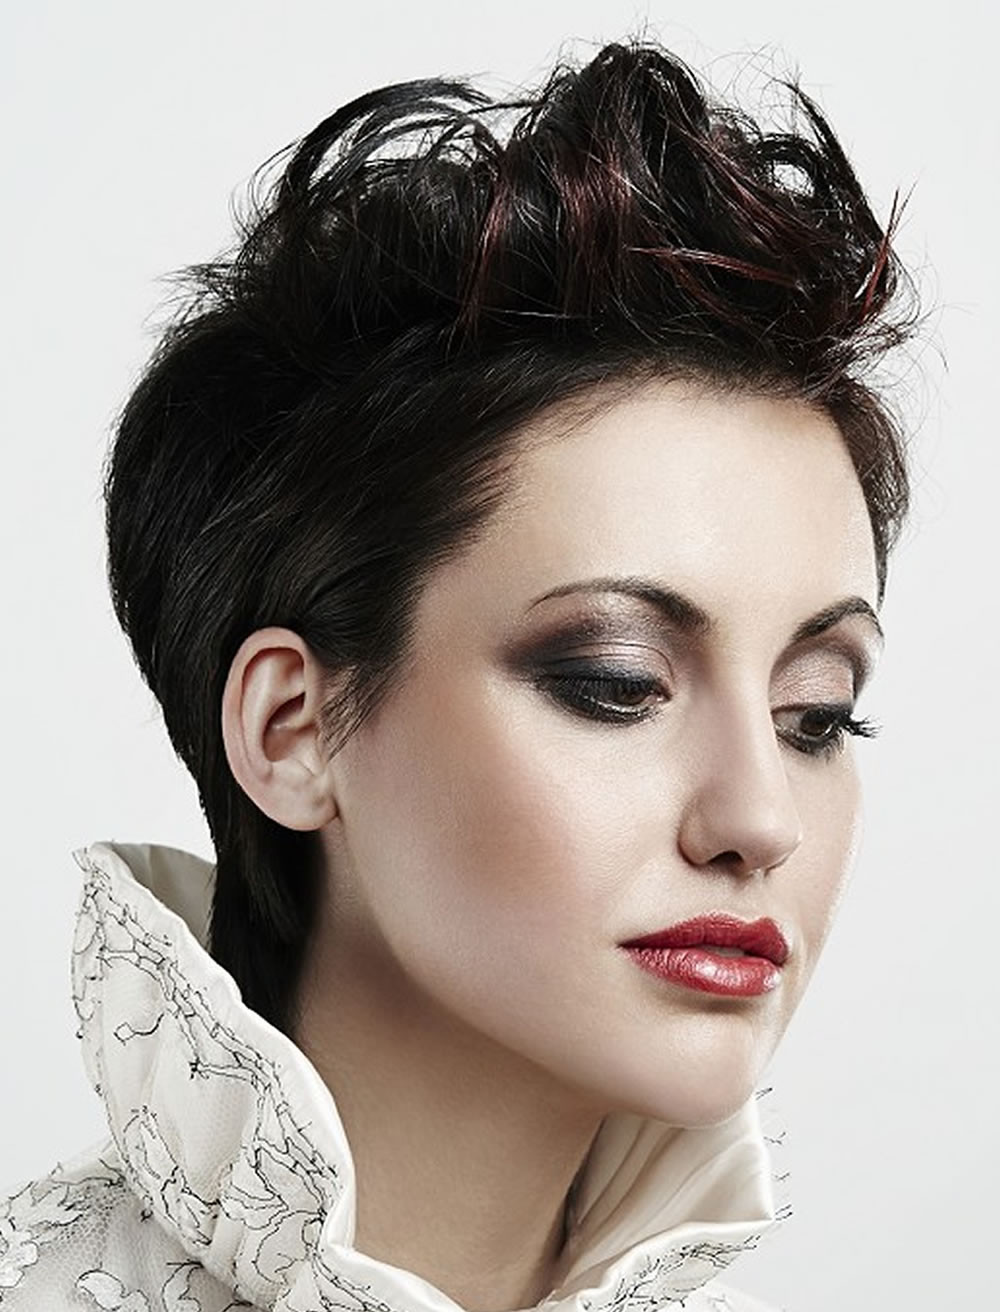 Best ideas about Trending Haircuts . Save or Pin 2018 Short Haircut Trends and Hair Colors for Female Now.